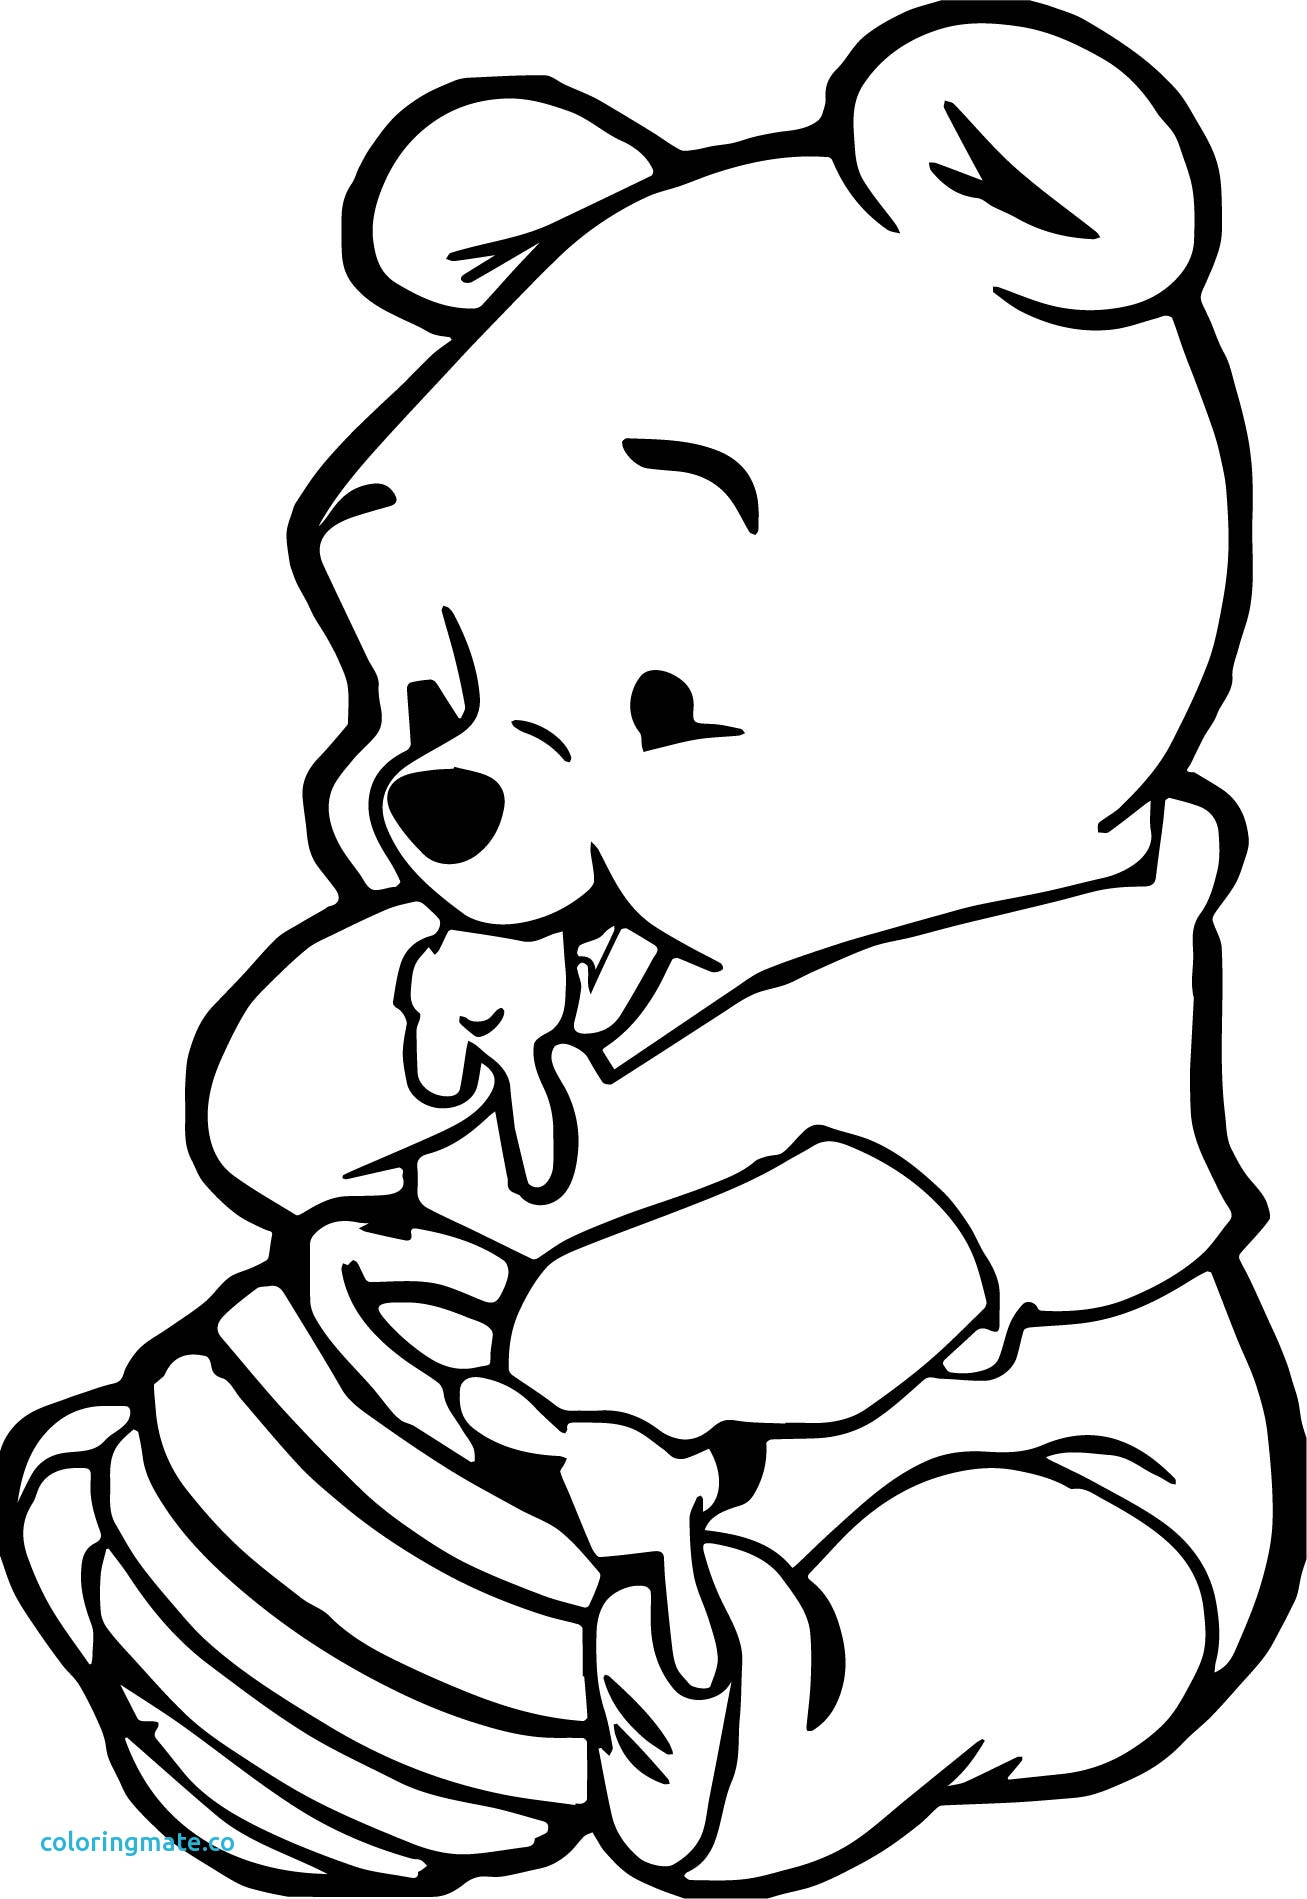 winnie the pooh drawing winnie the pooh drawing at getdrawings free download drawing winnie pooh the 1 1